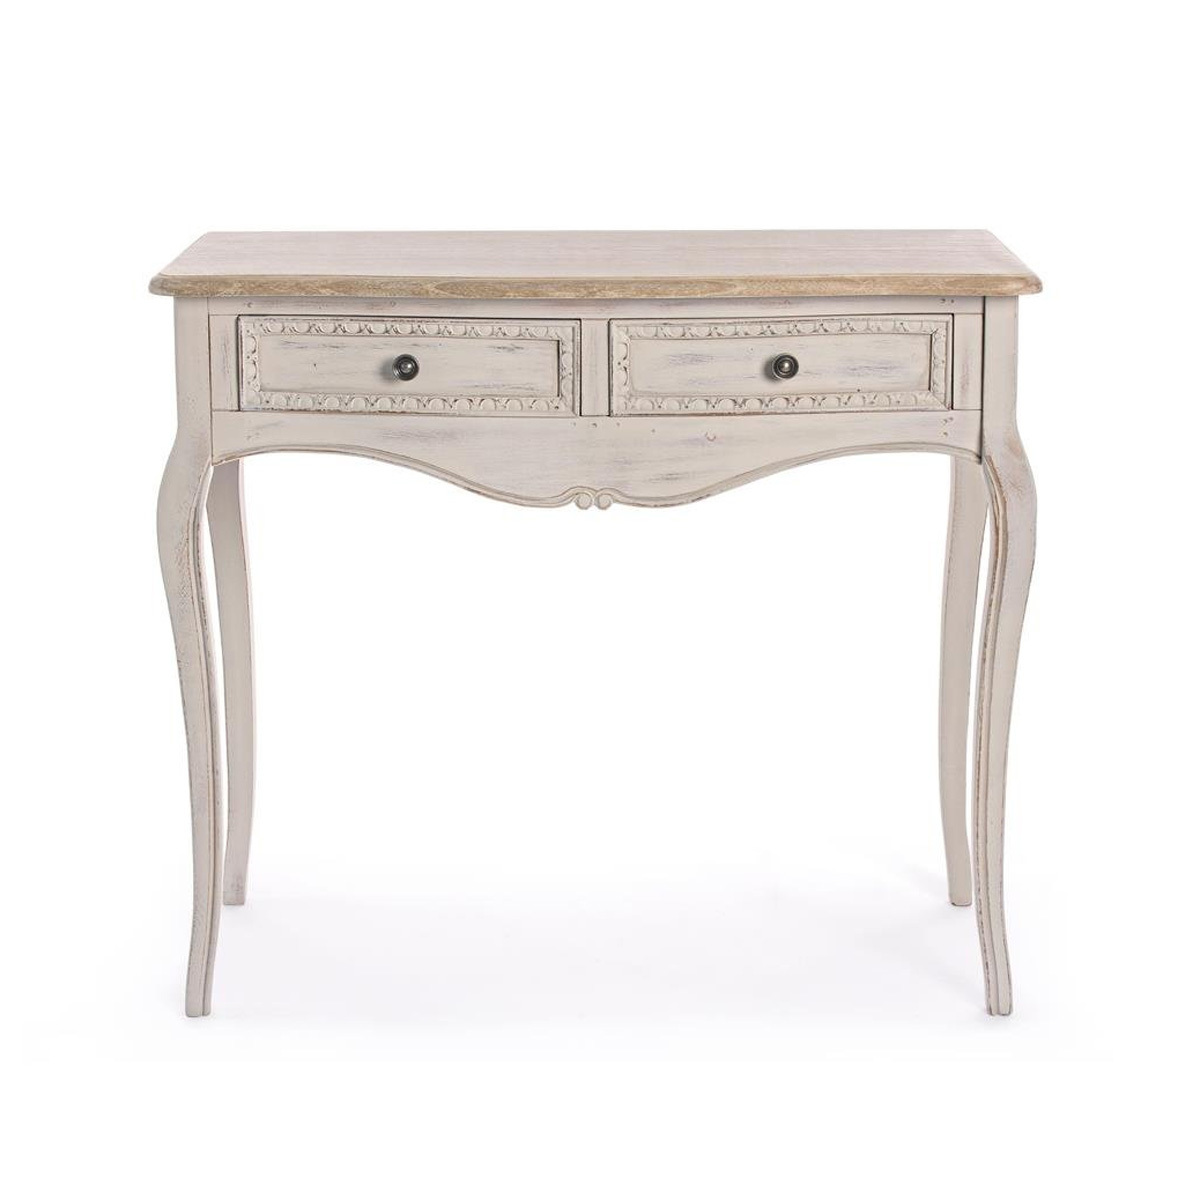 Photos 2: Bizzotto Fixed wood console l. 90 x 40 with 2 drawers 0745808